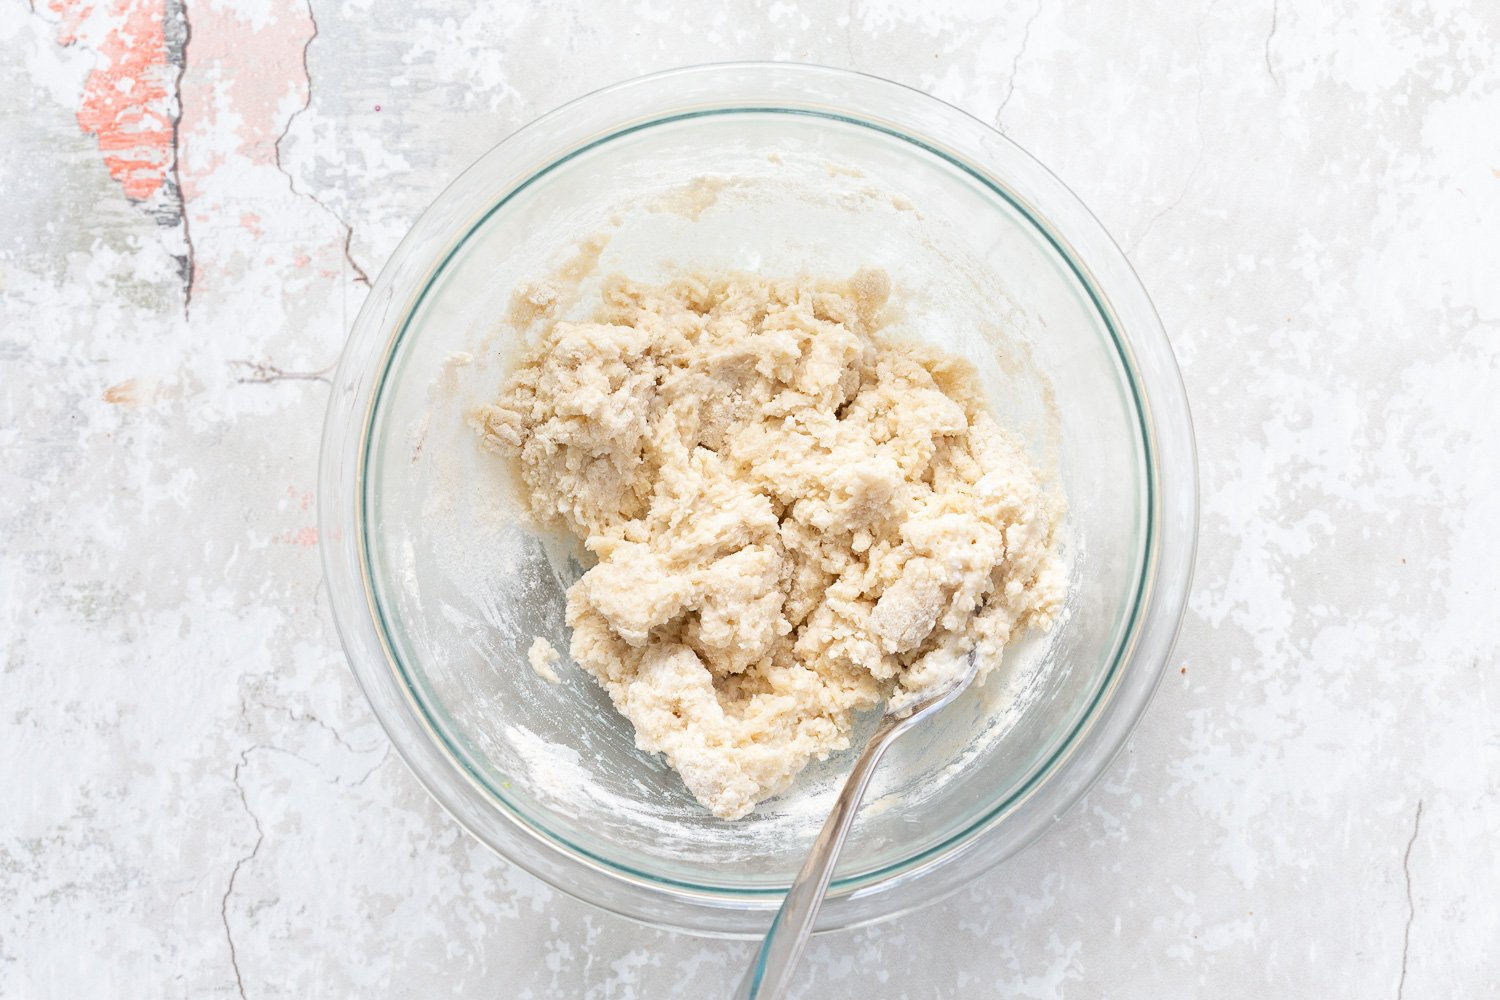 Dough in a glass bowl for the biscuit topping of our Vegan Blueberry Cobbler